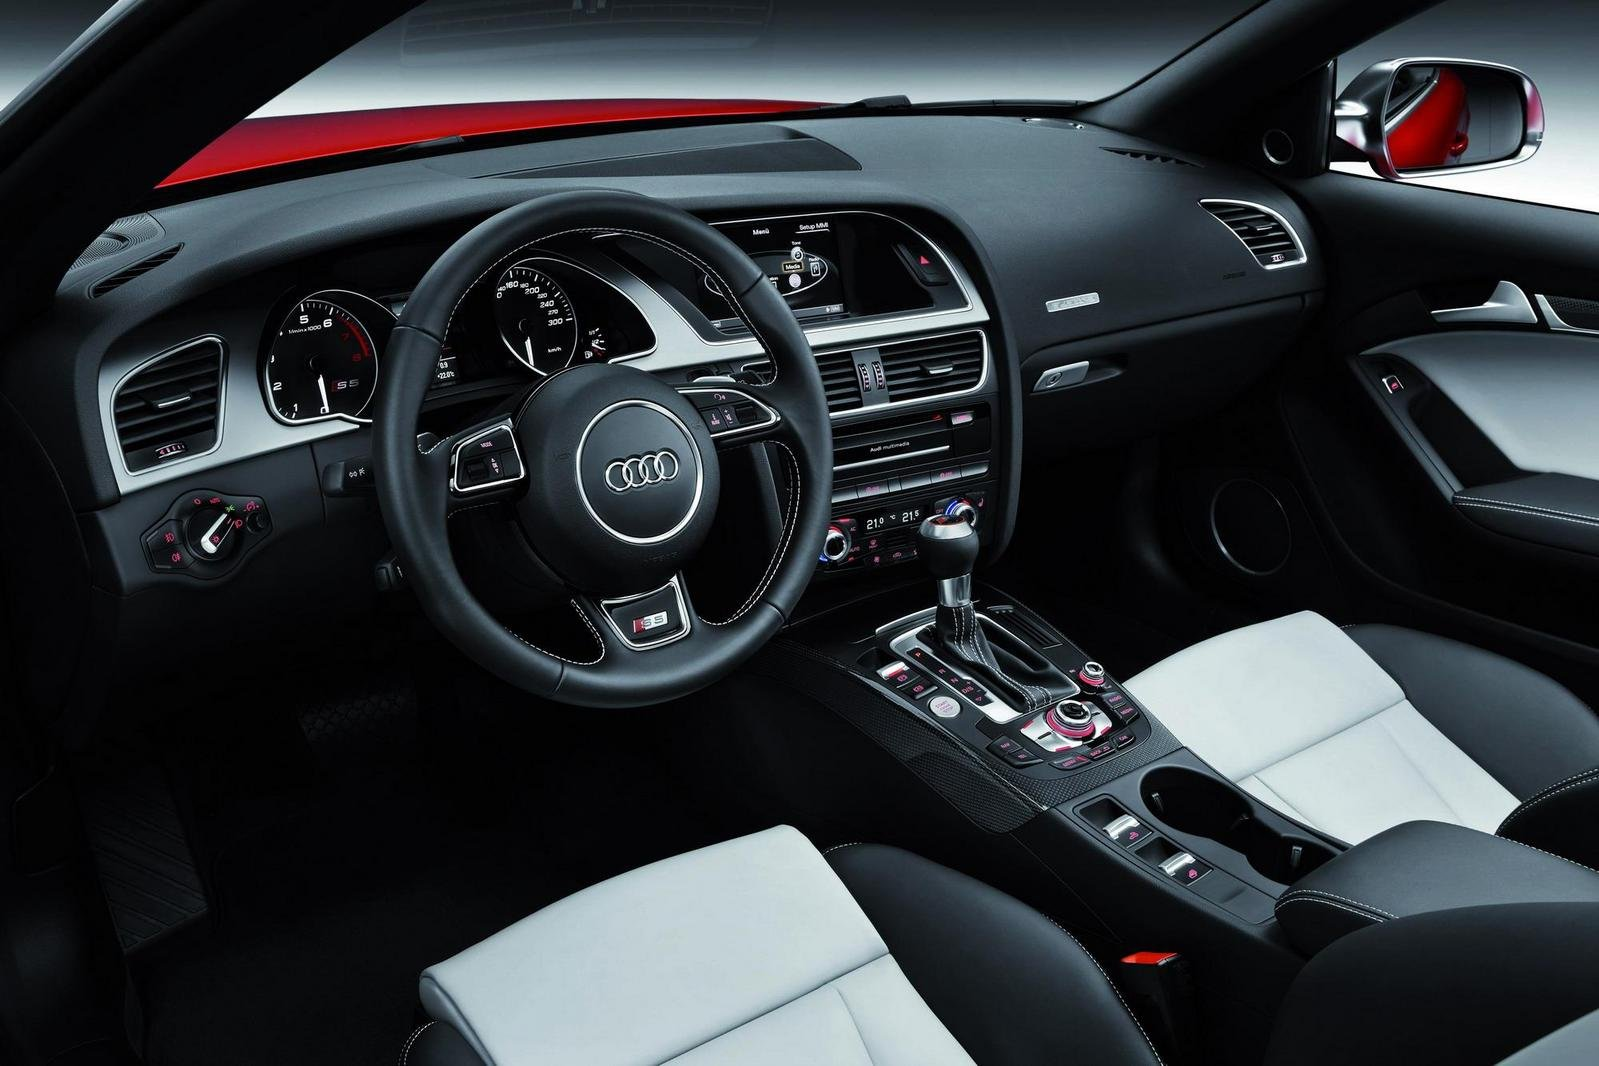 http://pictures.topspeed.com/IMG/crop/201107/audi-s5-convertible-22_1600x0w.jpg